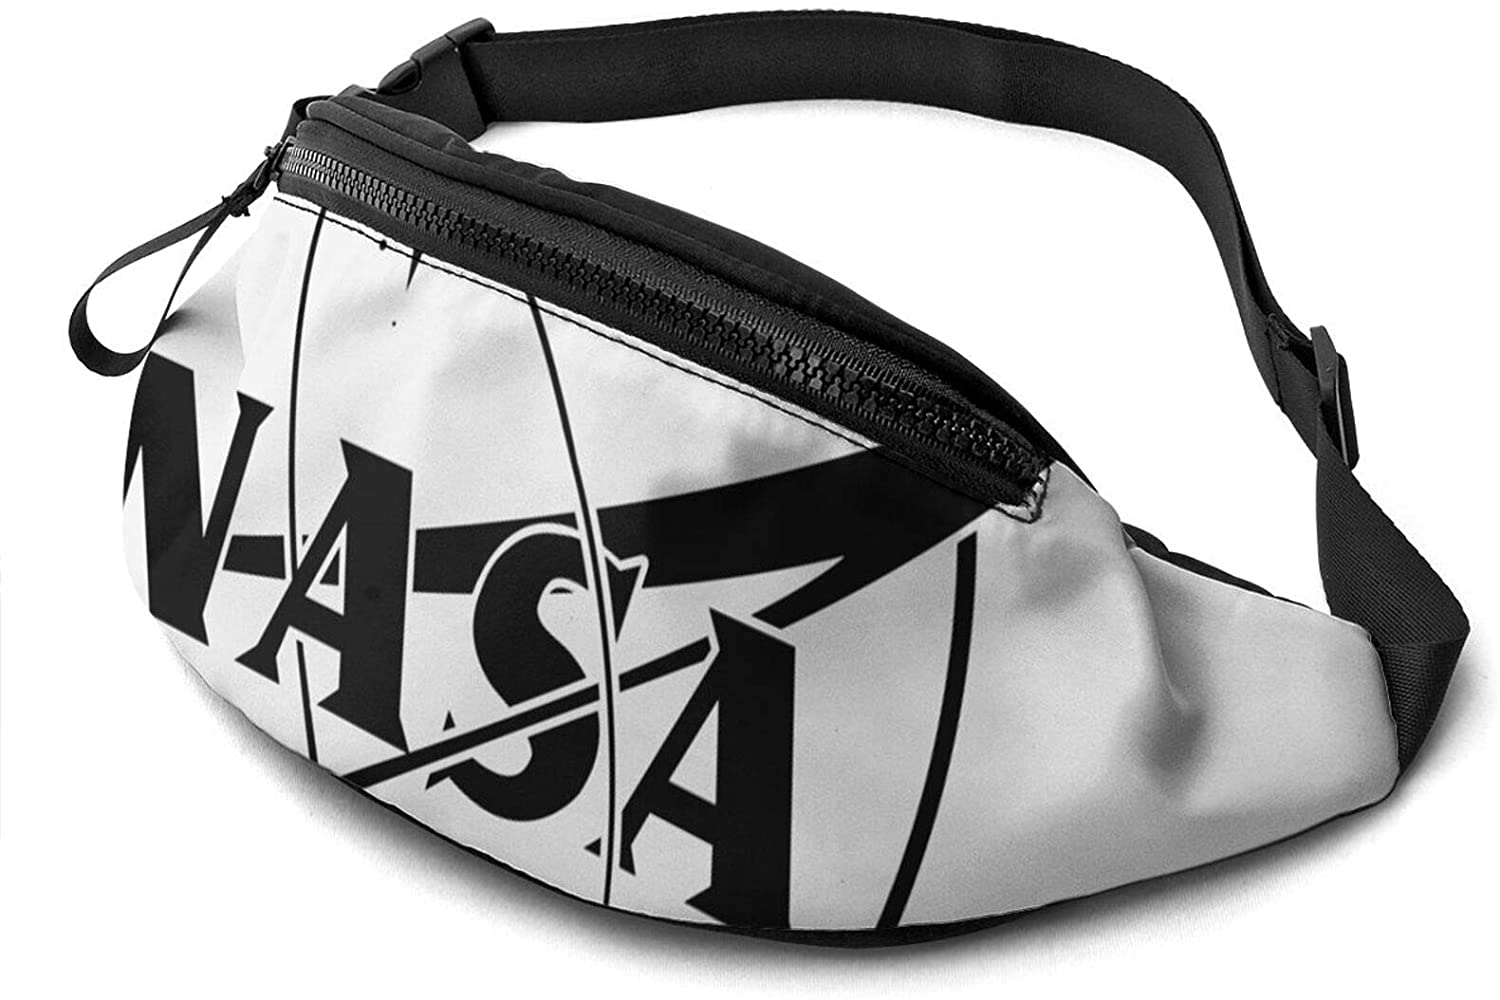 Atsh NASA Waist Pack Bag Fanny Pack for Men Women Hip Bum Bag with Adjustable Strap Fashionable and Convenient